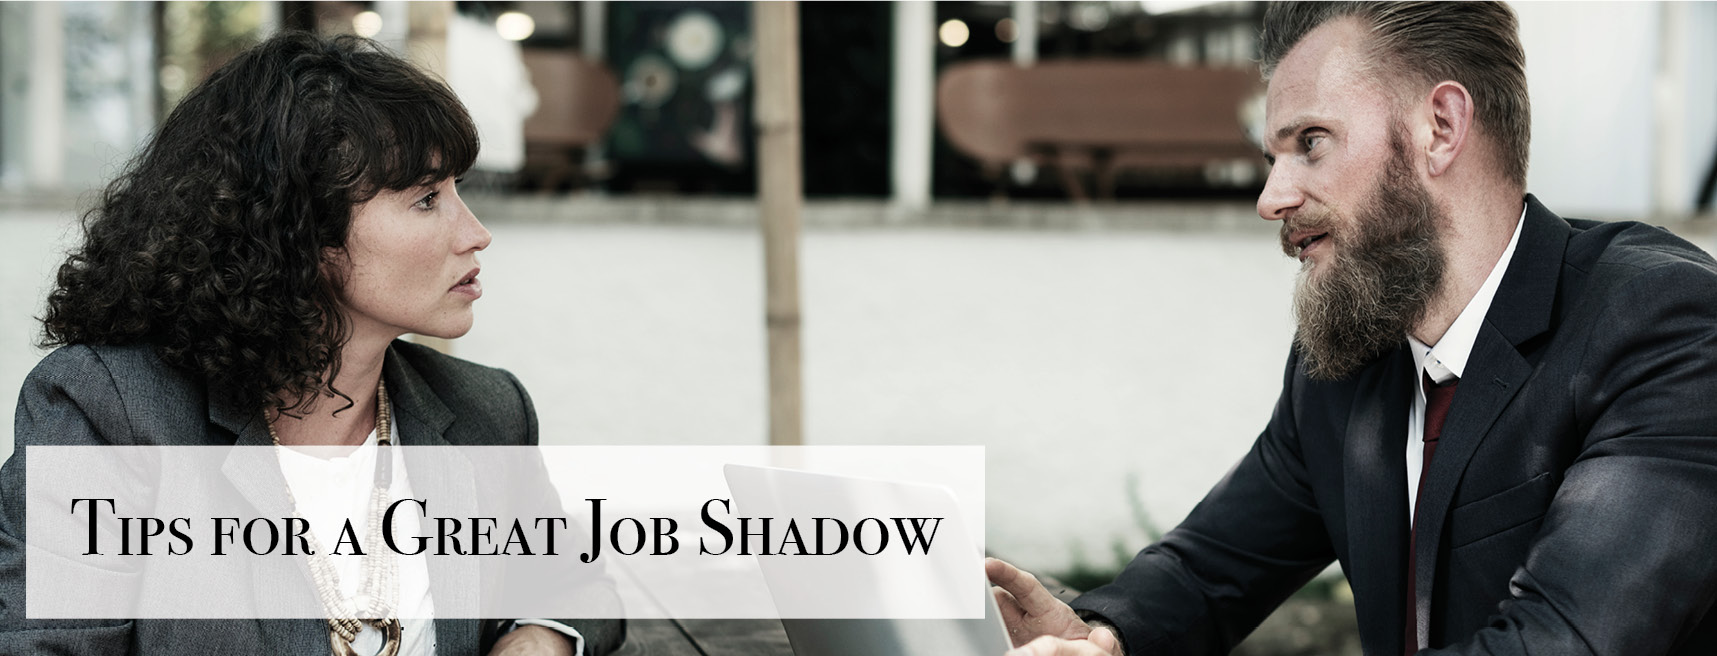 job shadow header.jpg